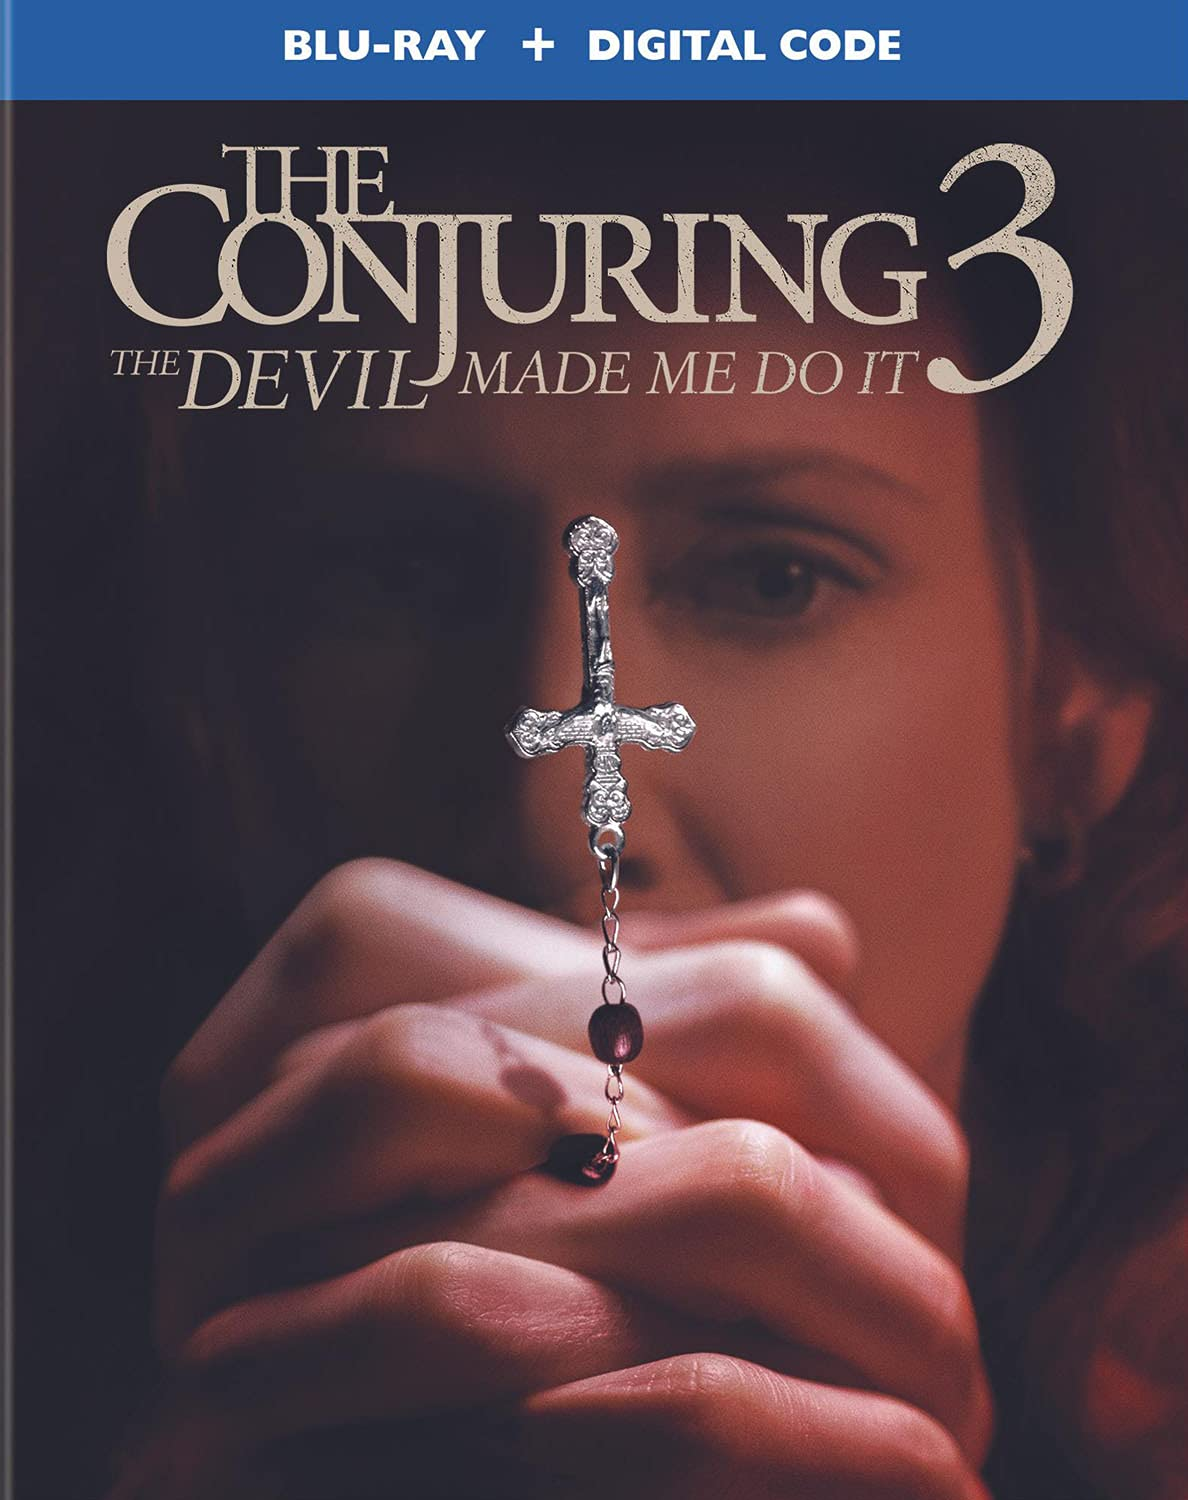 The Conjuring- The Devil Made Me Do It Blu-ray